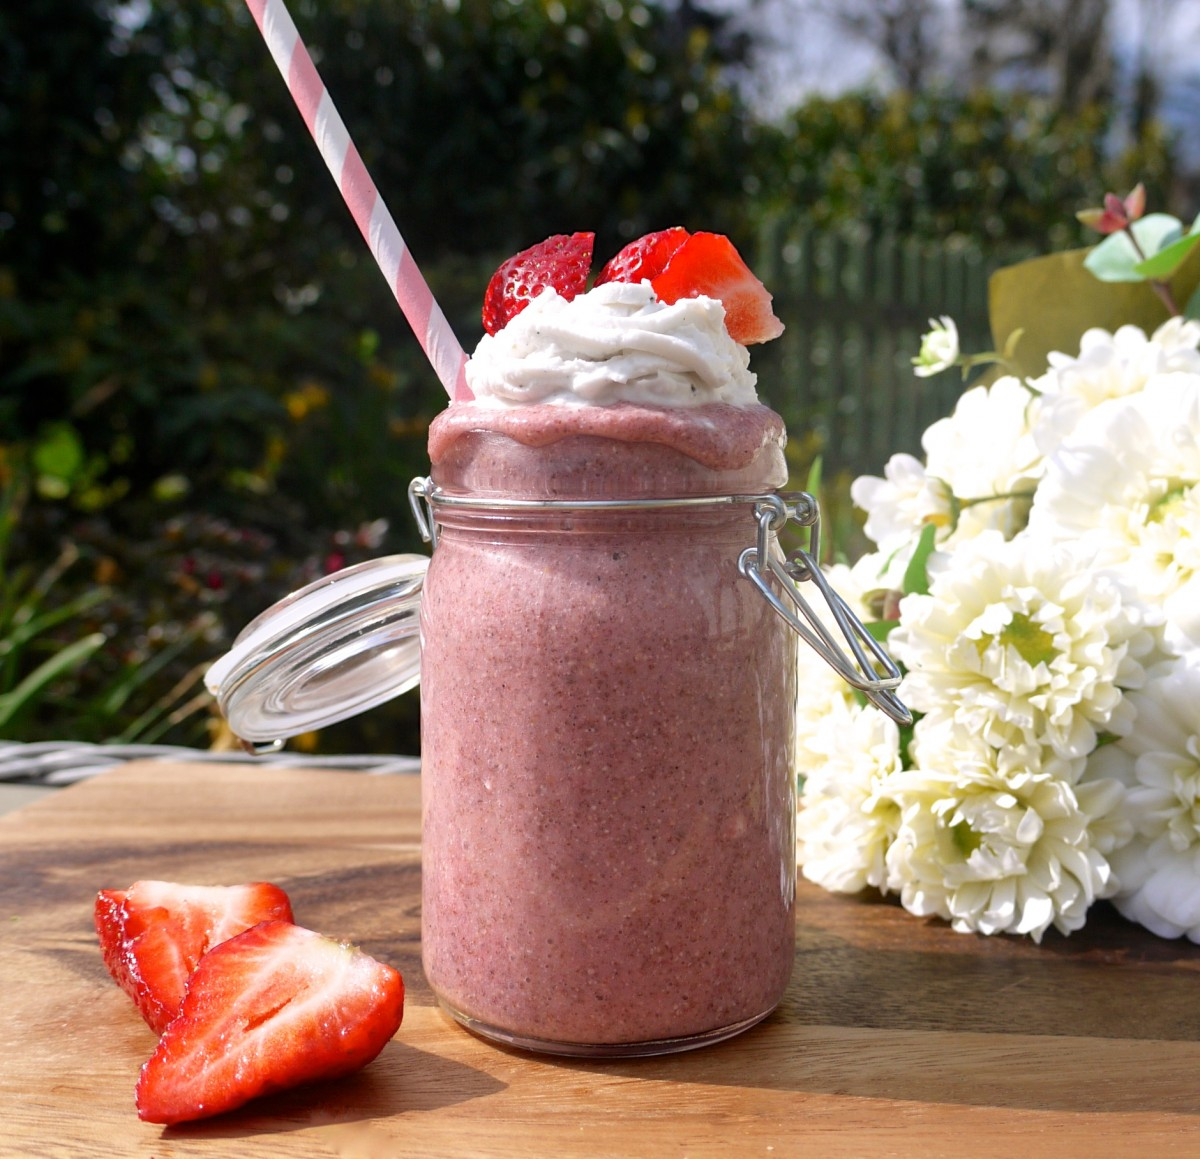 Strawberries and Cream Summer Shake